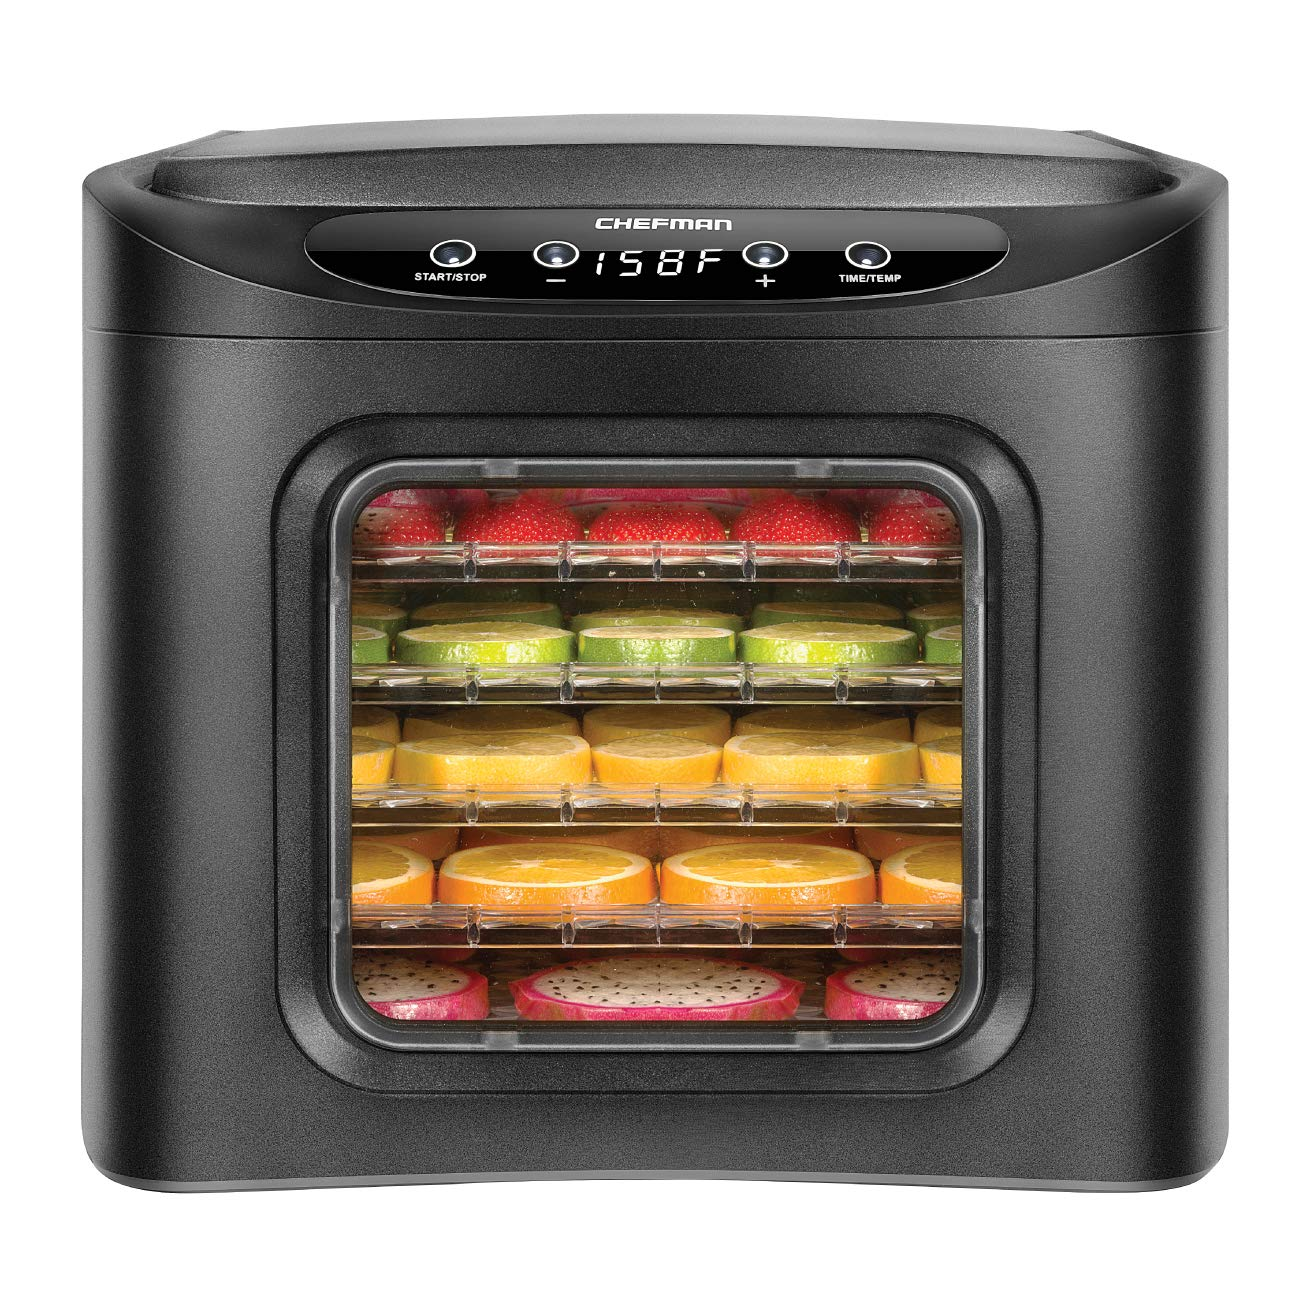 Chefman Food Dehydrator Machine 6 Tray BPA Free with Adjustable Digital Timer and Temperature Control Touch Screen for Drying Beef Jerky, Fruit, Vegetables, Herbs, Flowers and Meat or Fish Black